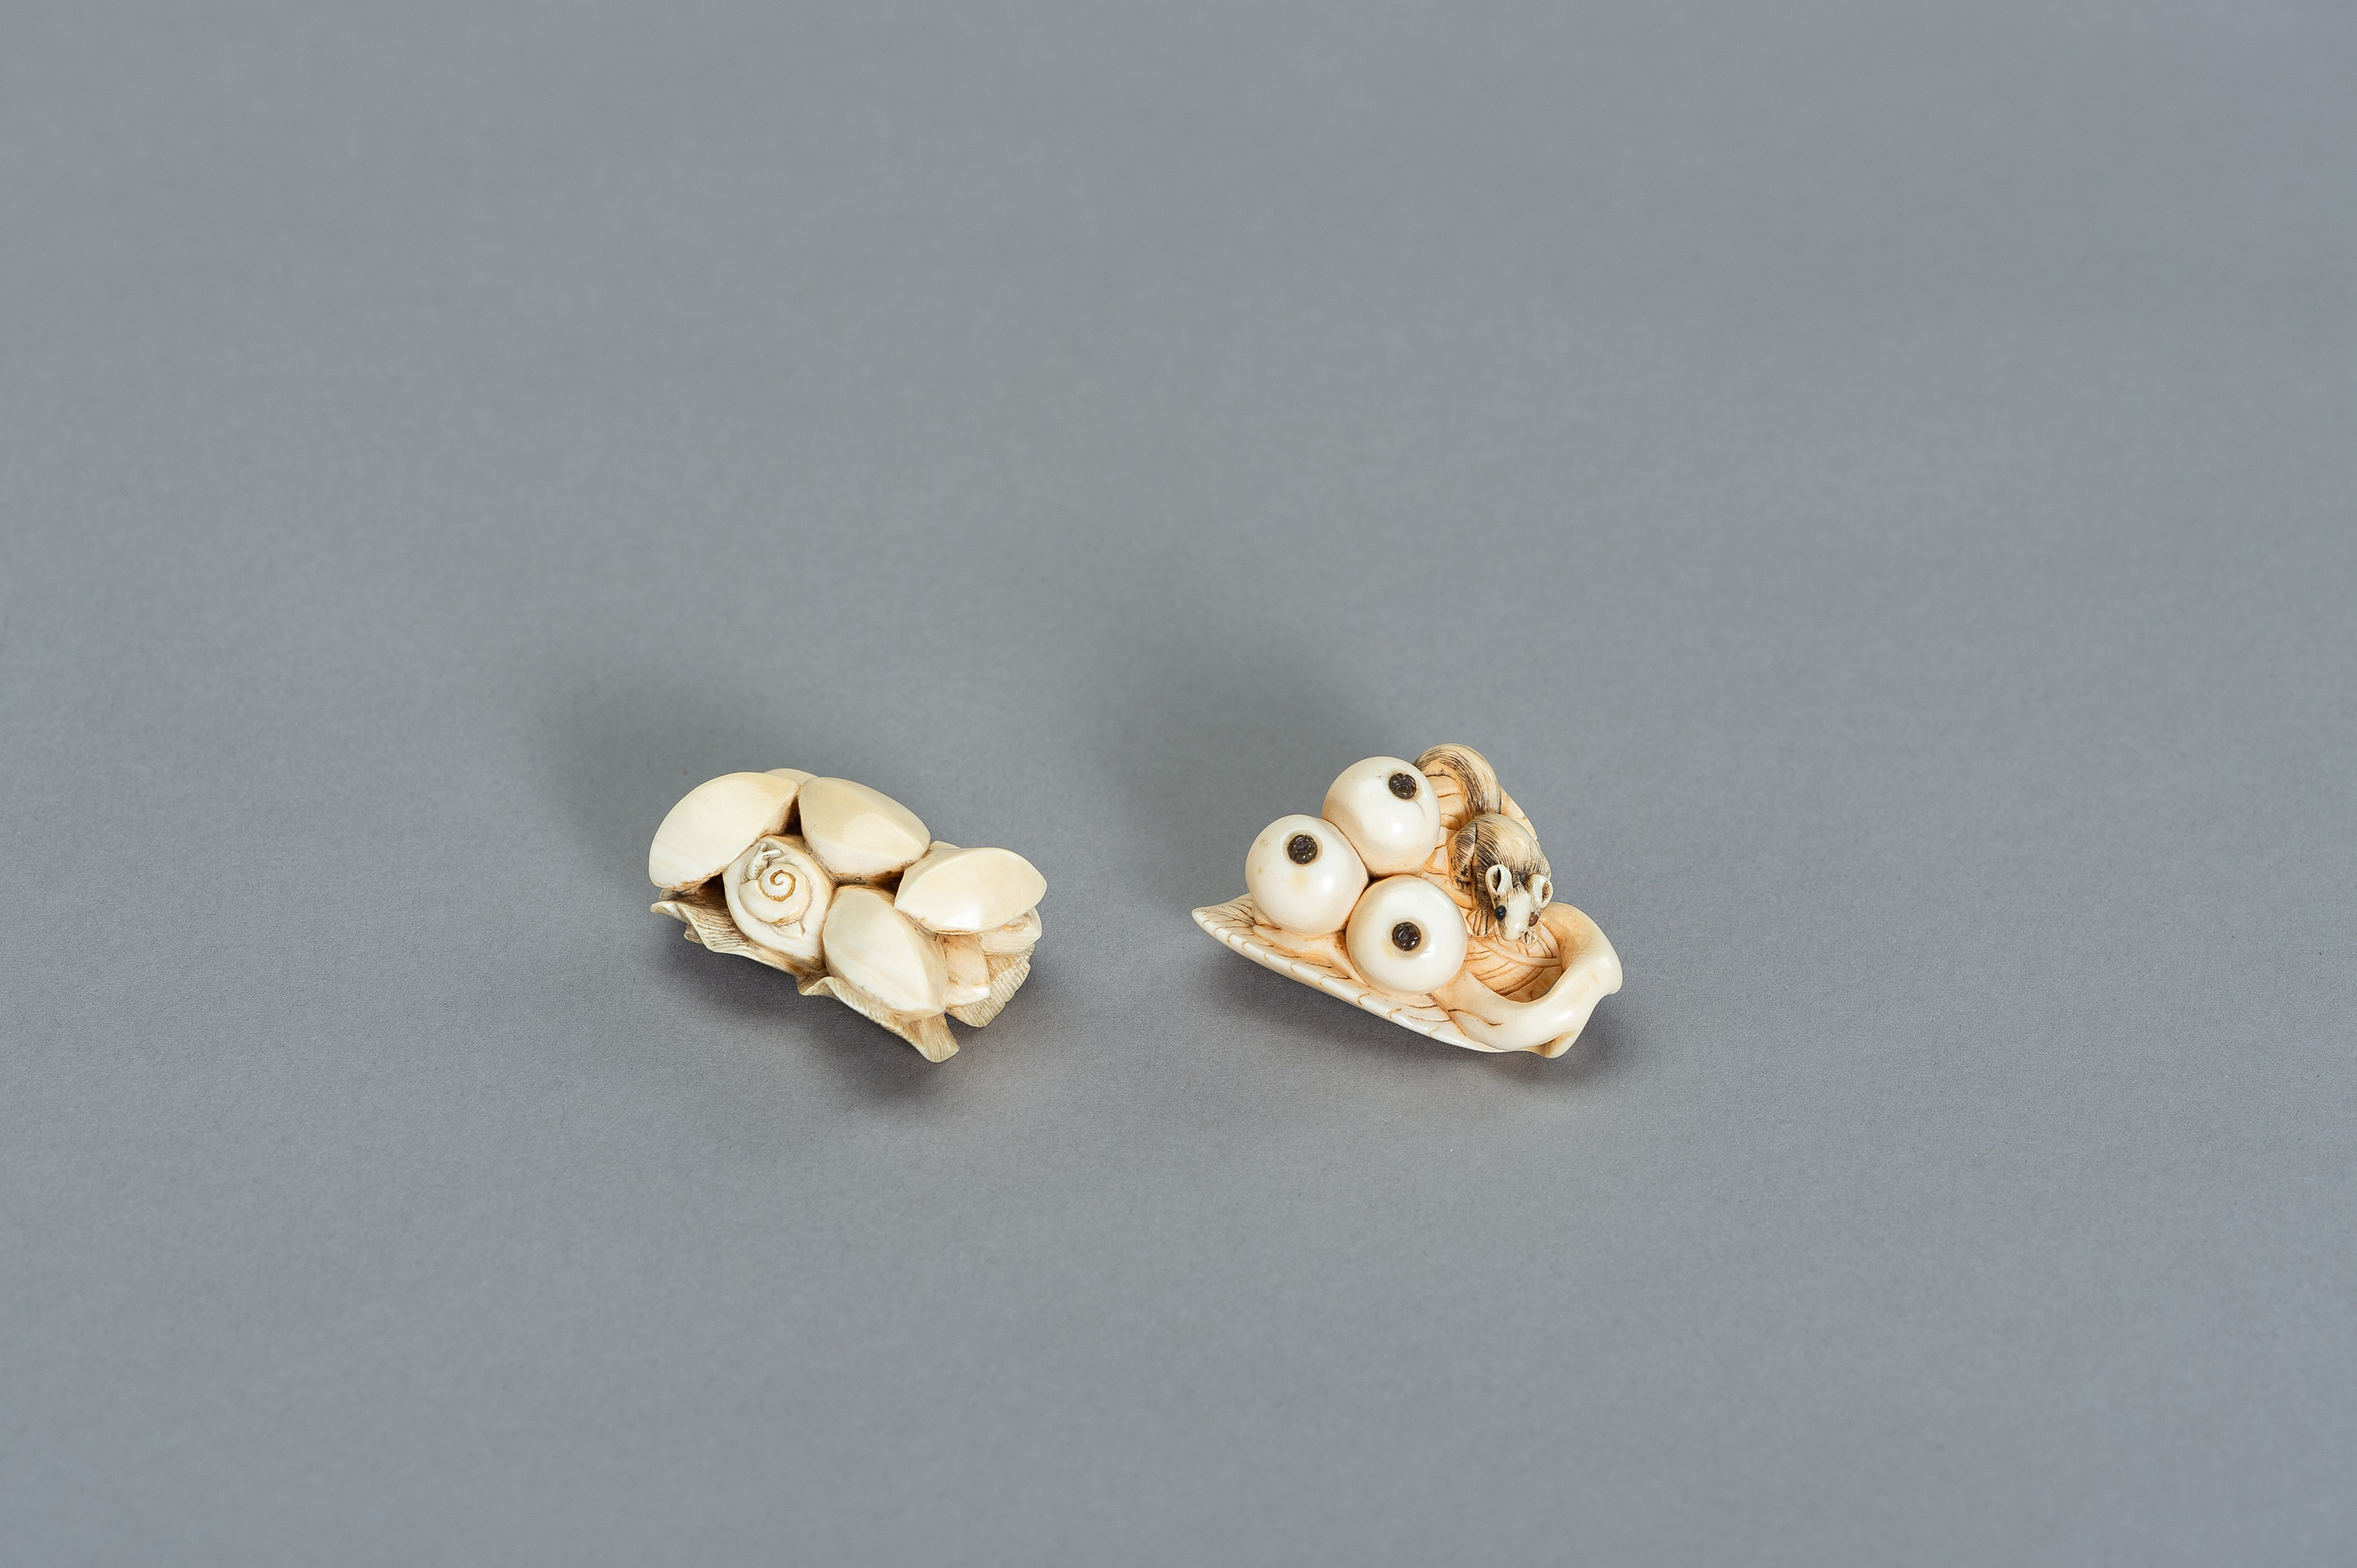 TWO STILL LIFE IVORY NETSUKE WITH SMALL CREATURES